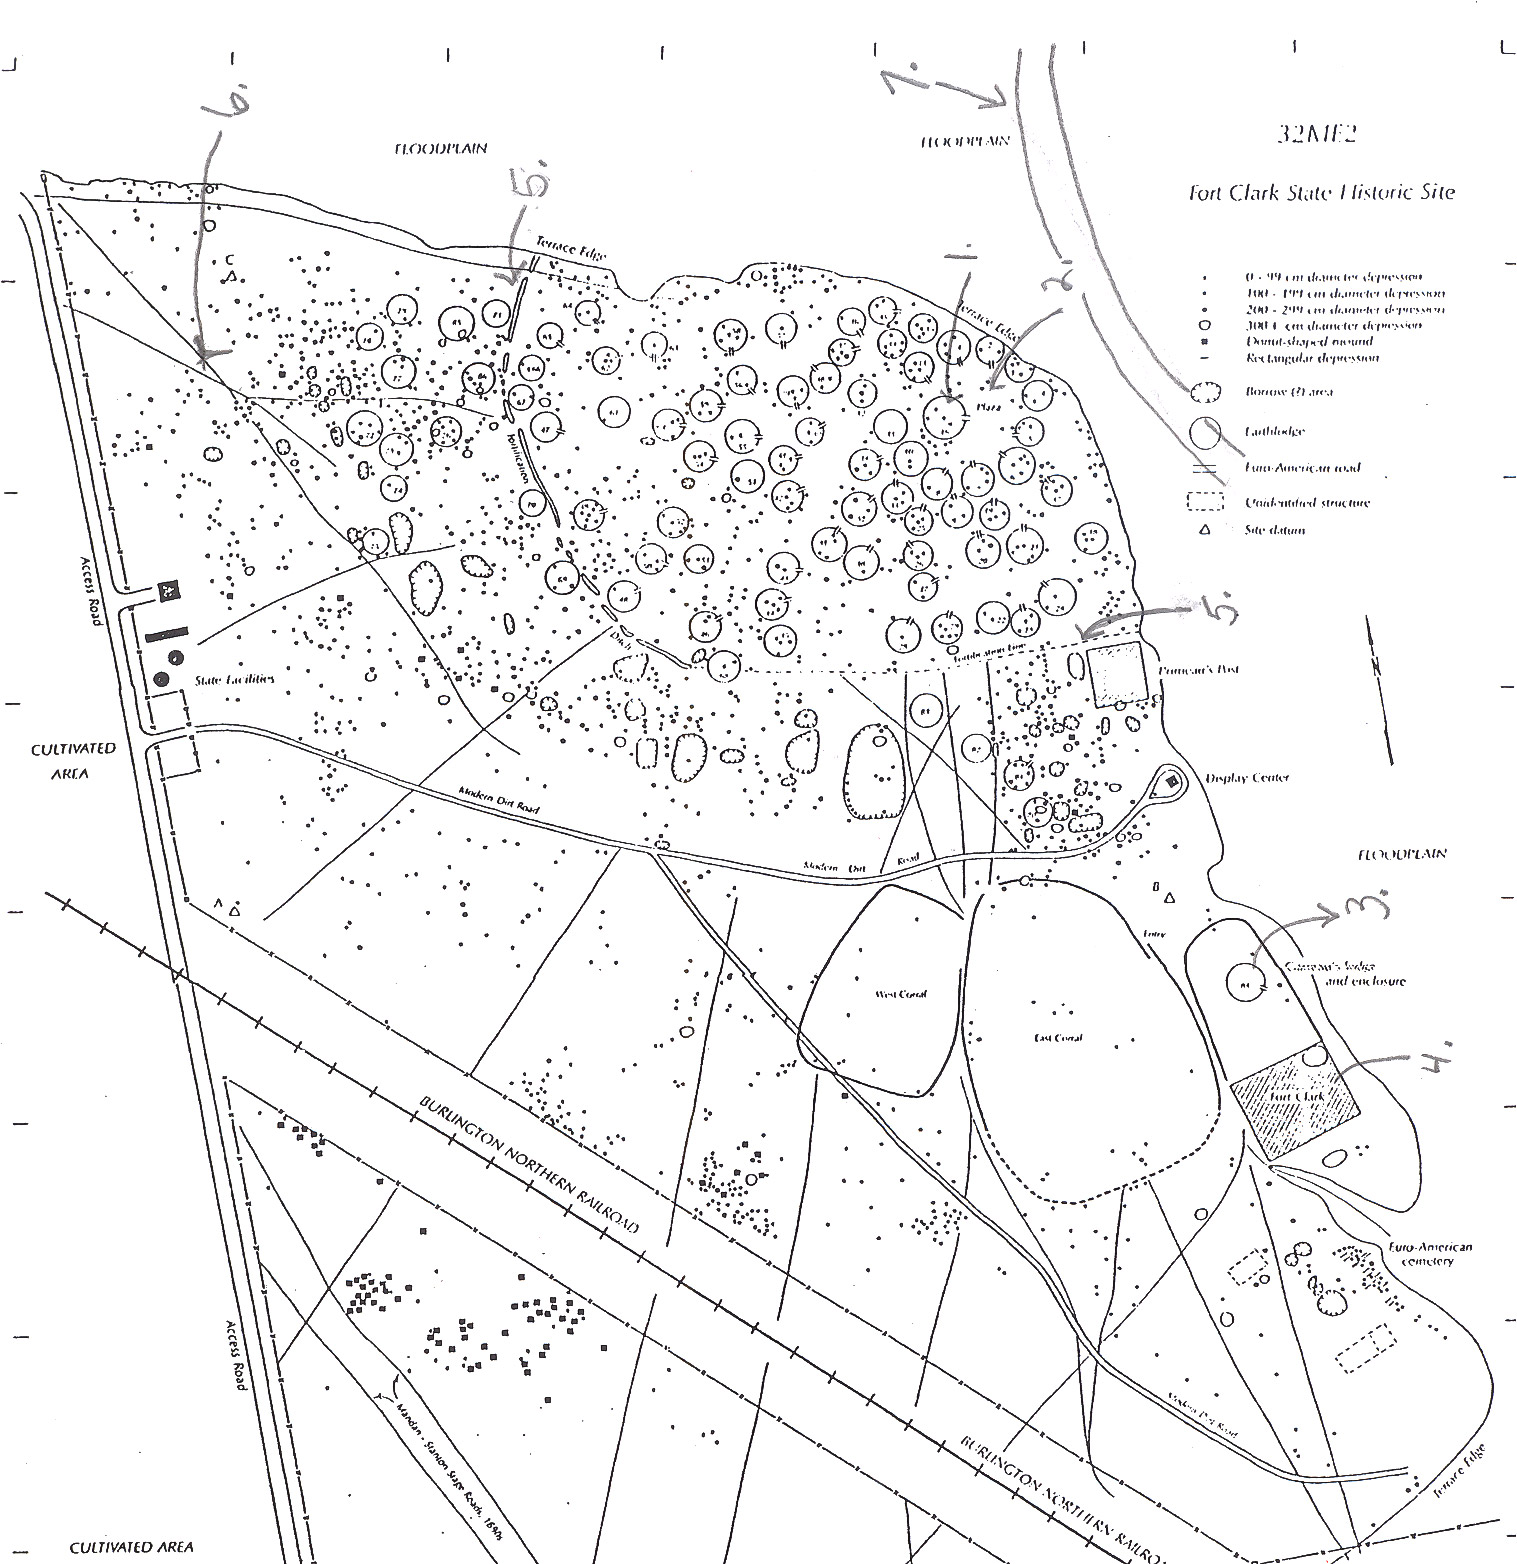 Archaeologist Raymond Wood made this drawing of the remains of Fort Clark and the nearby Mandan village.  In the lower right corner, the shaded rectangle shows the location of Fort Clark.  The small circle just above (north ) was the site of Pierre Garreau's lodge.  Garreau was the son of a French fur trader and a Mandan woman.  He lived in the Mandan style.  The circles are the sites of lodges in the village.  The village ceremonial lodge (No. 1) and the village plaza (No. 2) were located close to the river bank.  The village, called Mitu'tahakto's (meh Toot ah hang tosh), was built in 1822 with a palisade wall (No. 5) for protection.  Trails were dug into the earth by travois poles dragging behind horses.  The trails are still visible (No. 6).